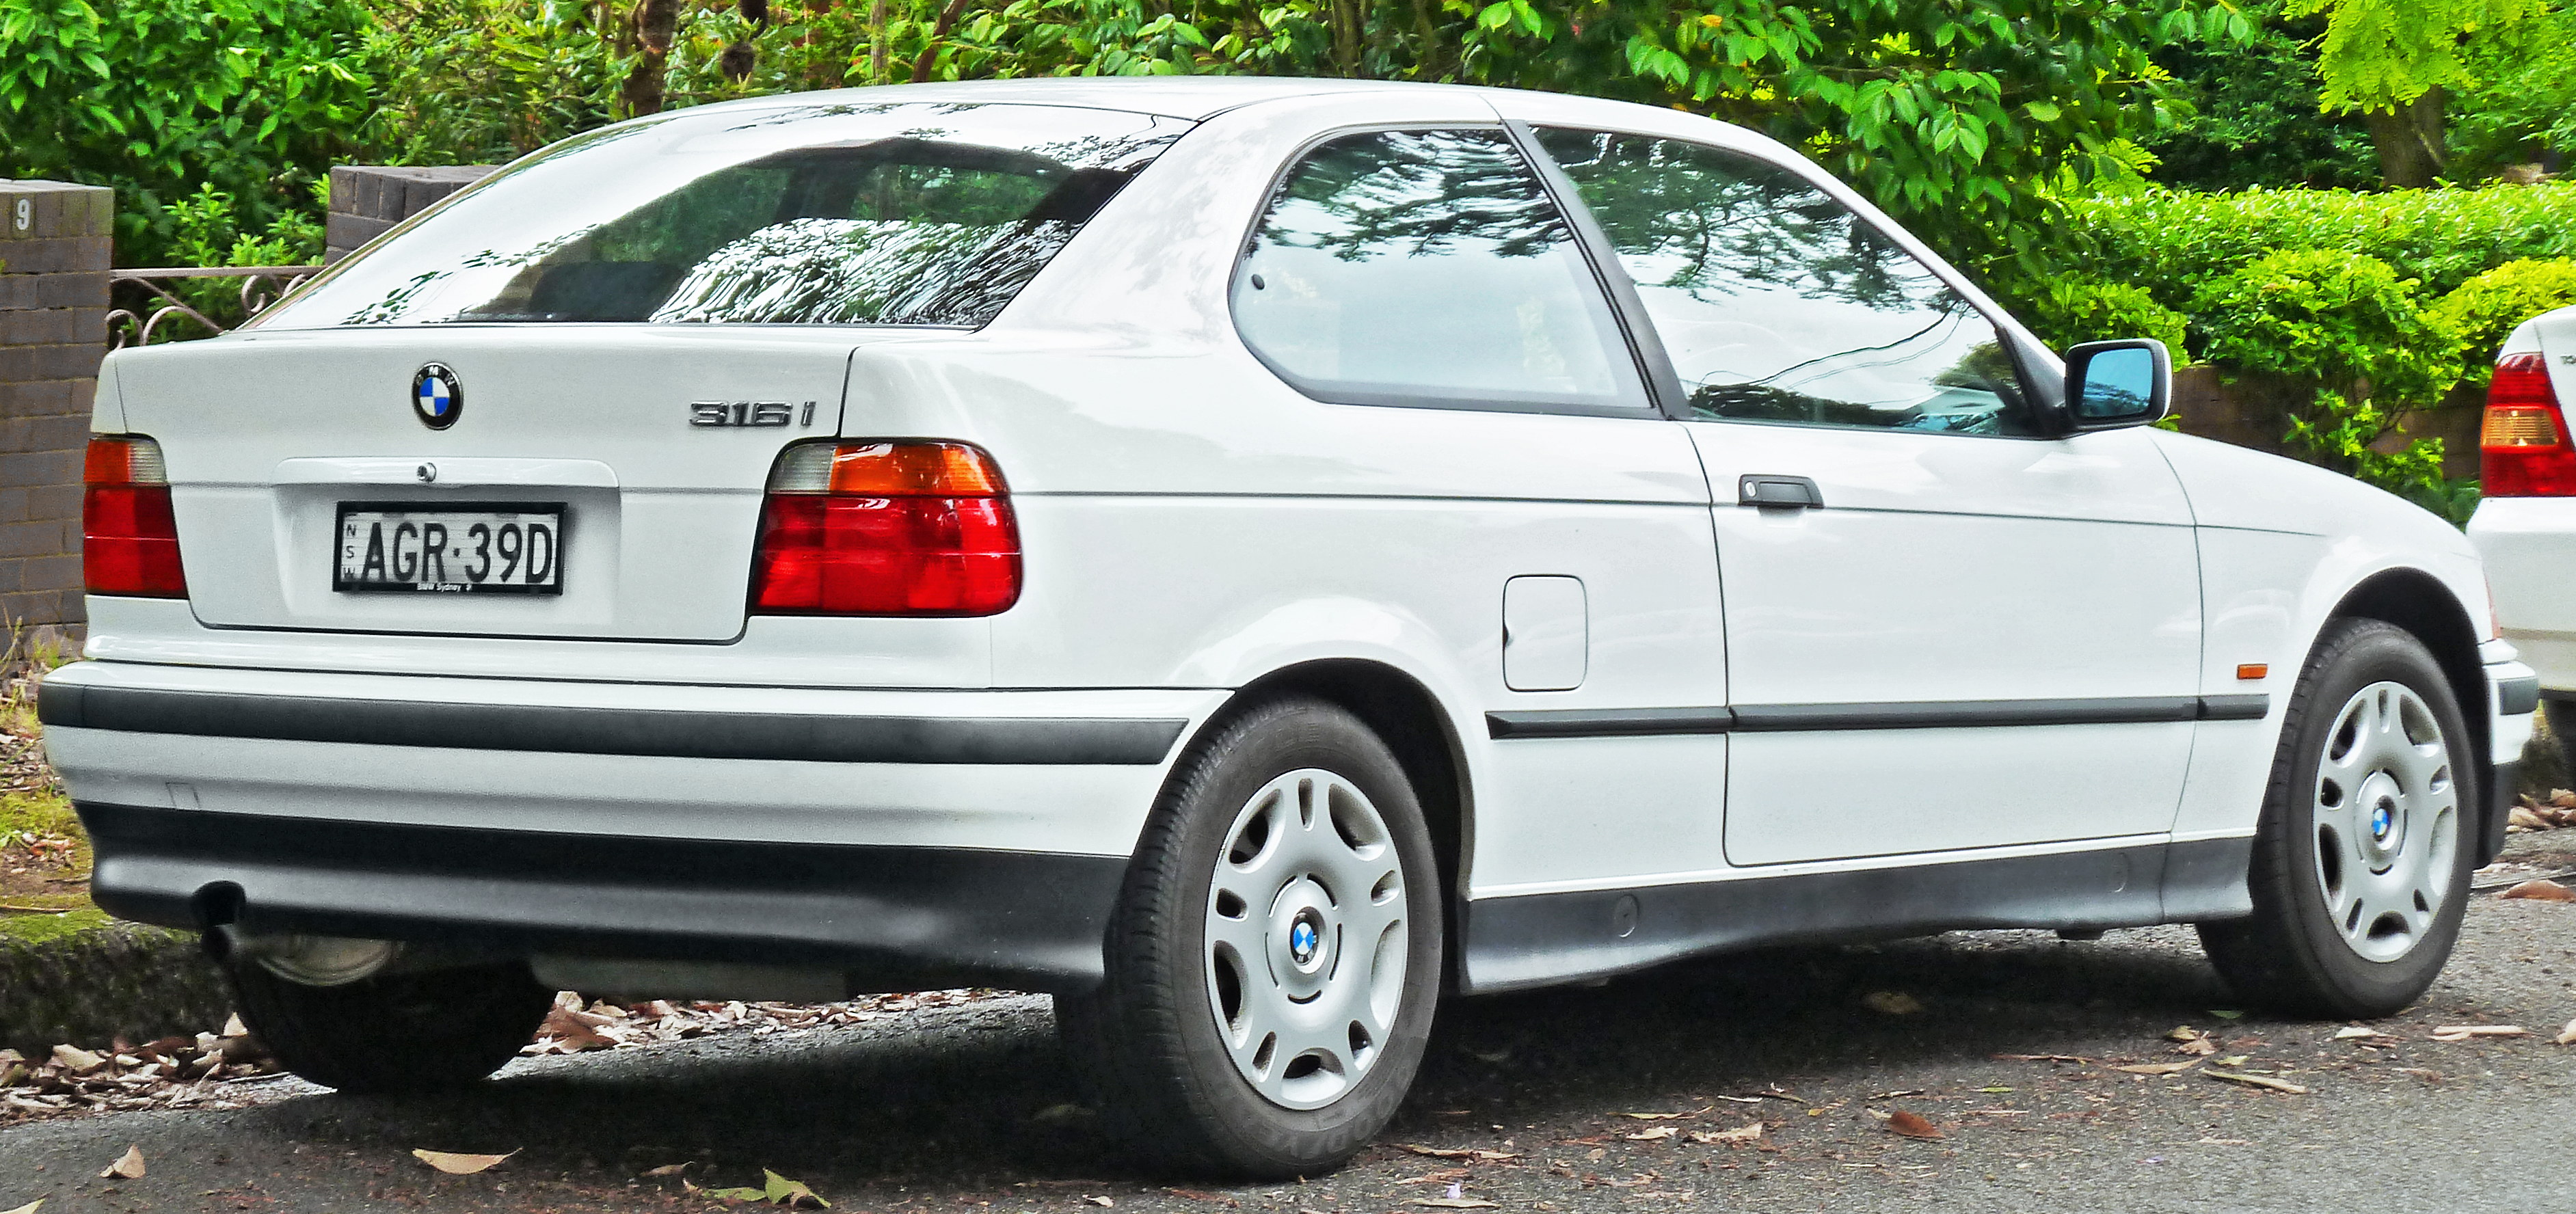 BMW 316i technical details, history, photos on Better ...